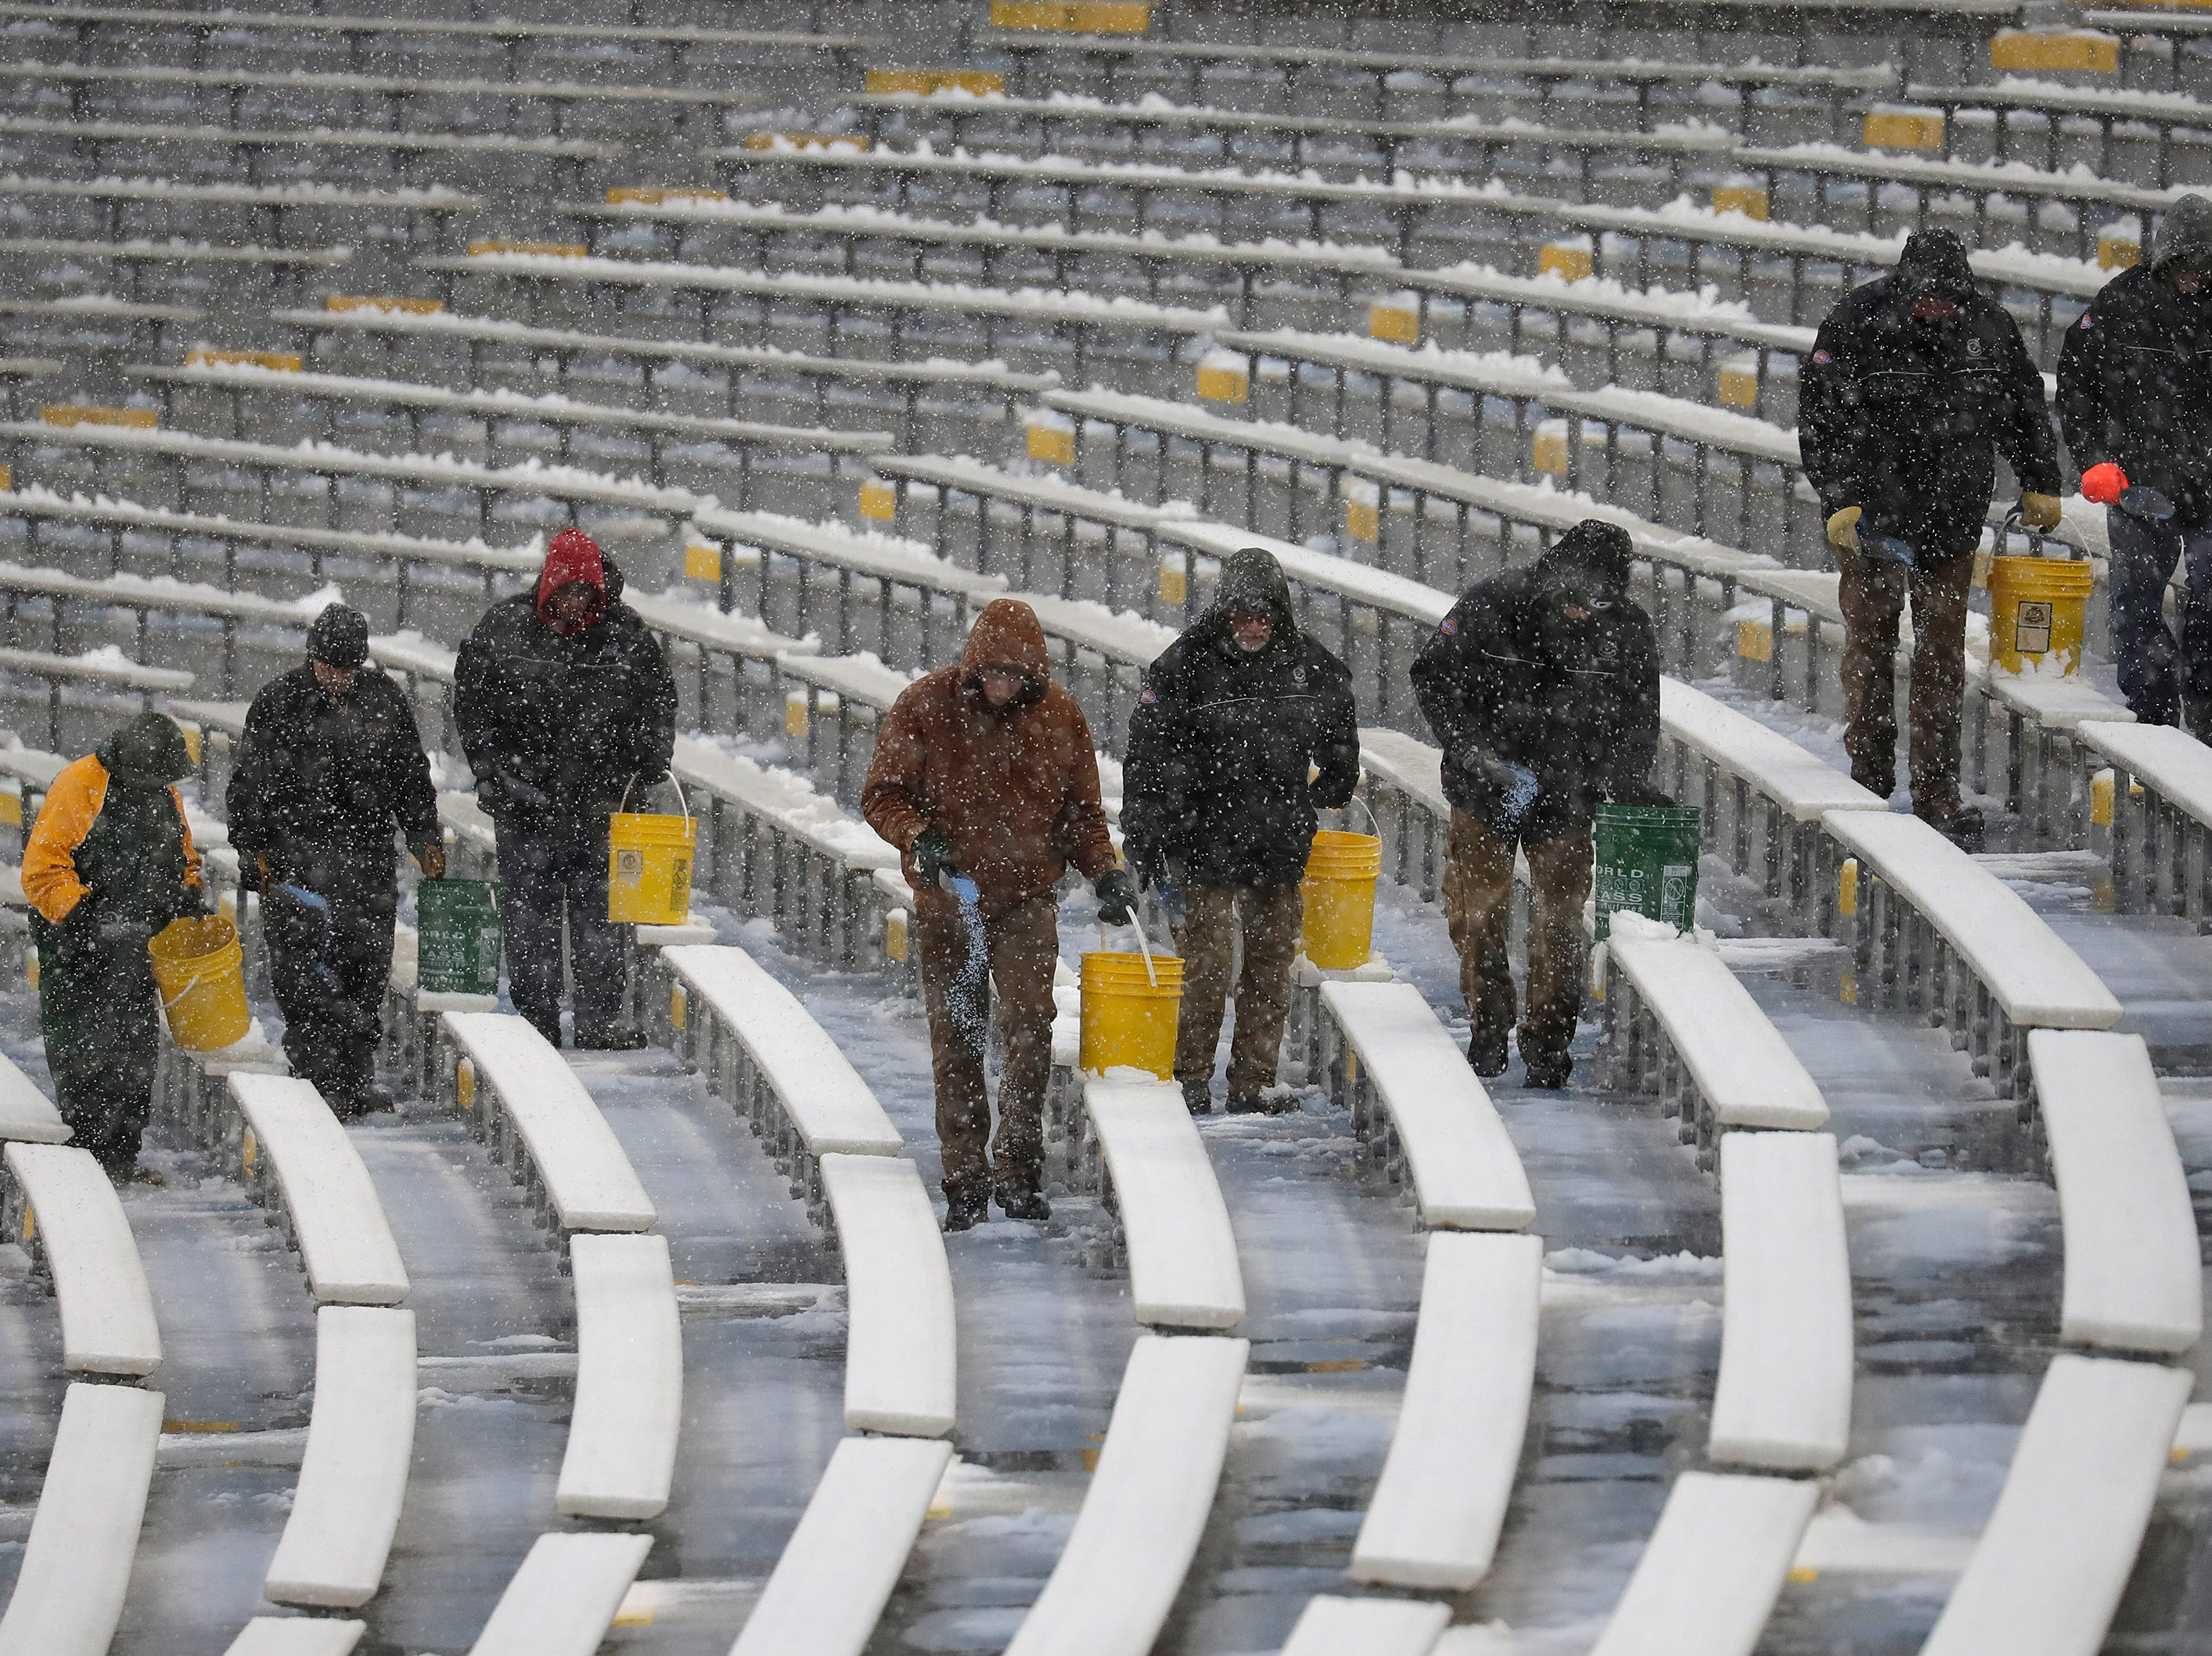 Workers spread salt in the seating area before the Green Bay Packers play against the Arizona Cardinals Sunday, December 2, 2018, at Lambeau Field in Green Bay, Wis.